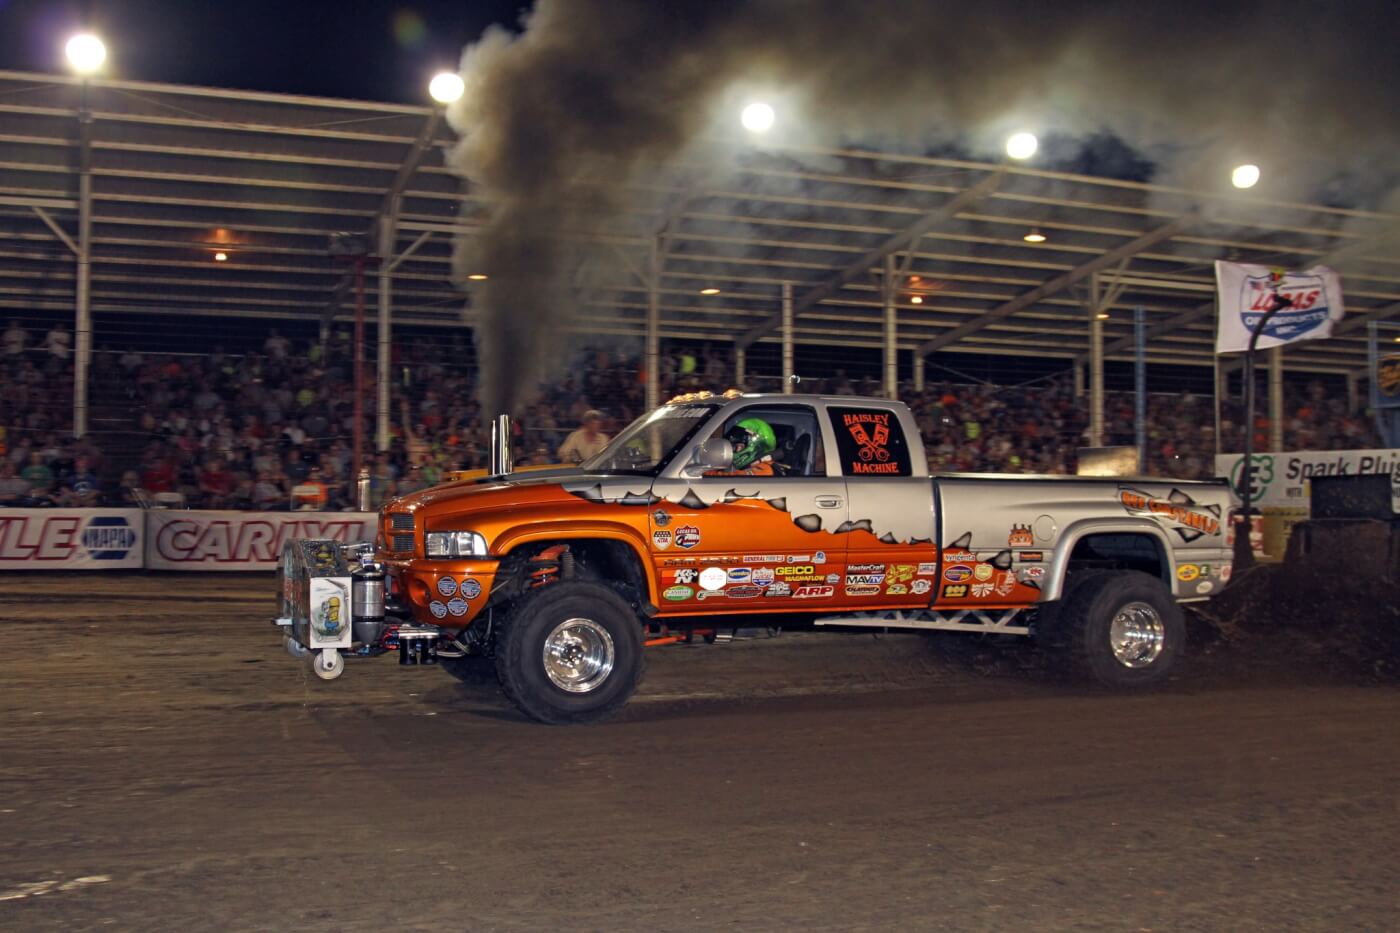 """Like the Scheid dragster, the Haisley Machine """"Off Constantly"""" pulling truck is a monster that's even more impressive in person. The Haisley crew attends a lot of pulls throughout the year and odds are that if it's a major pull they will be there and in contention for the win."""